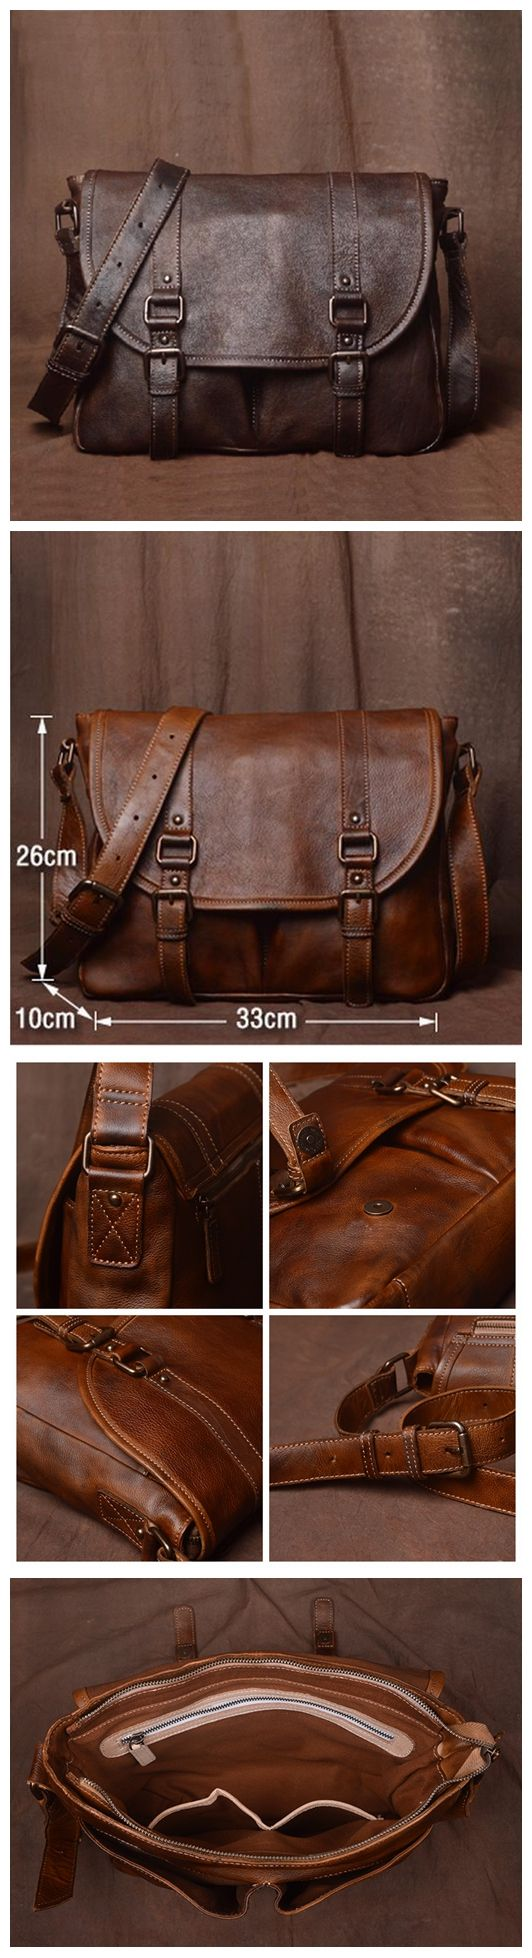 Classic Mens Leather Bag, Handmade Leather Briefcase, Business Bag JZ001